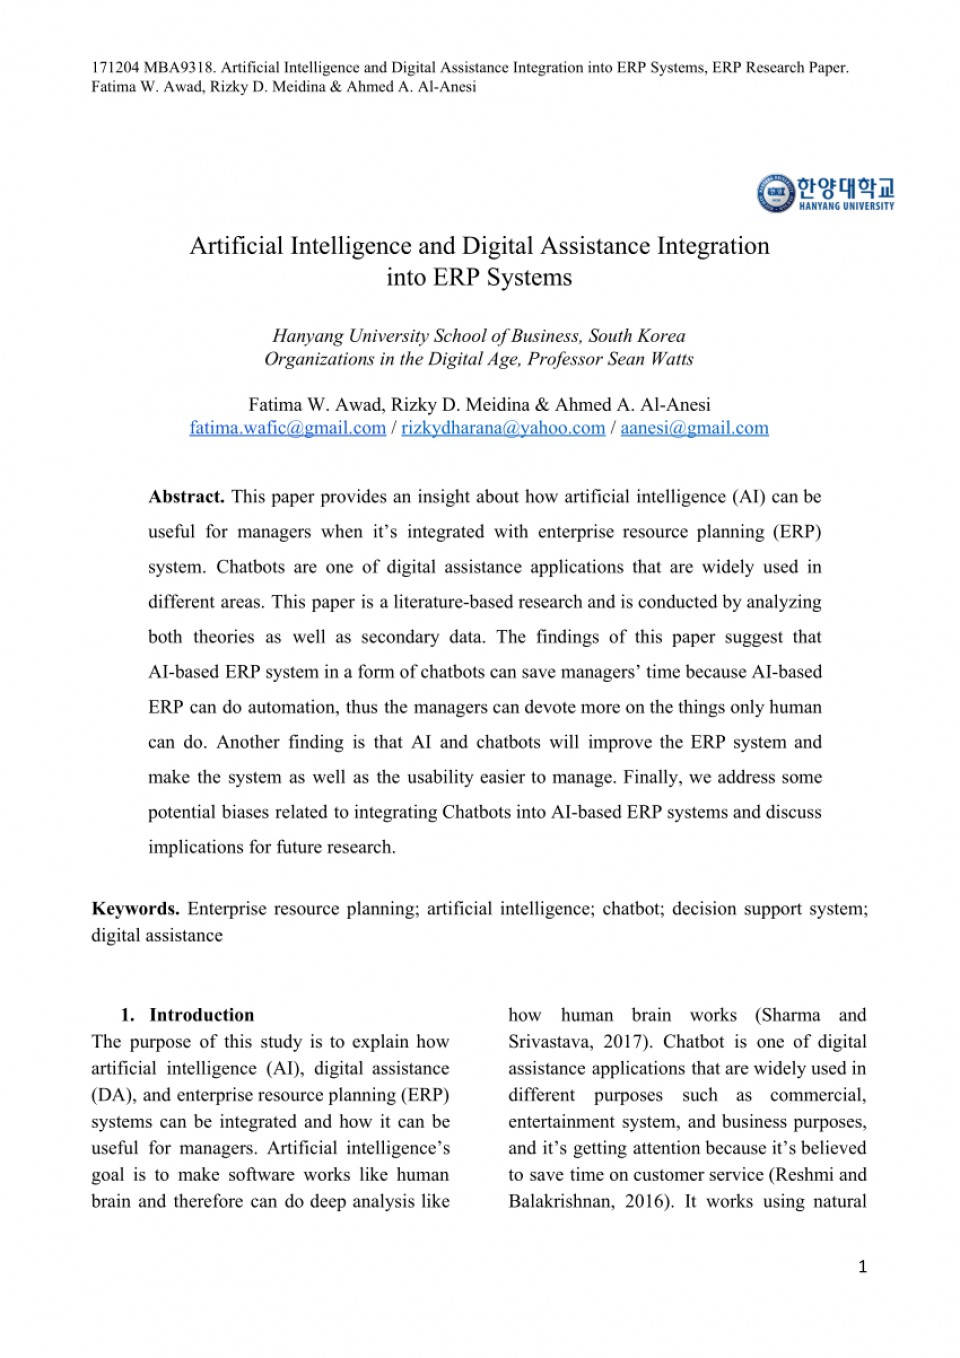 001 Artificial Intelligence Research Paper Topics Archaicawful Pdf 2018 960